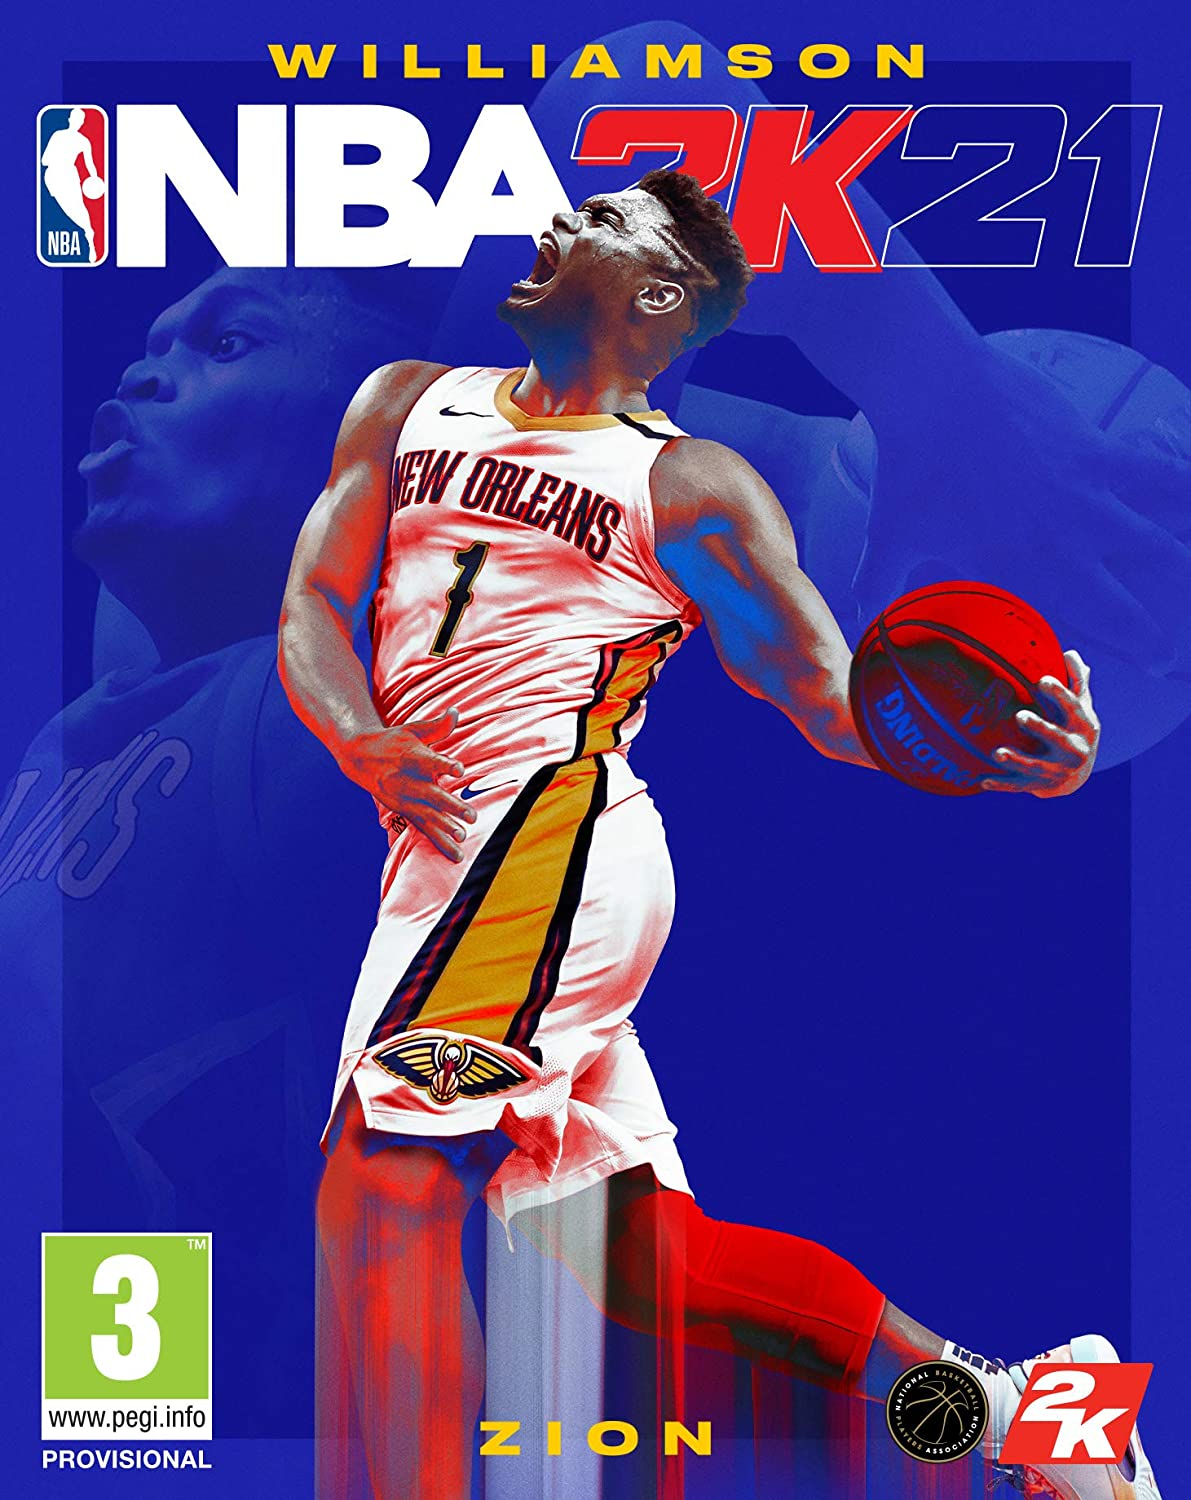 NBA 2k21- Nintendo Switch, Estándar Edition: Amazon.es: Videojuegos